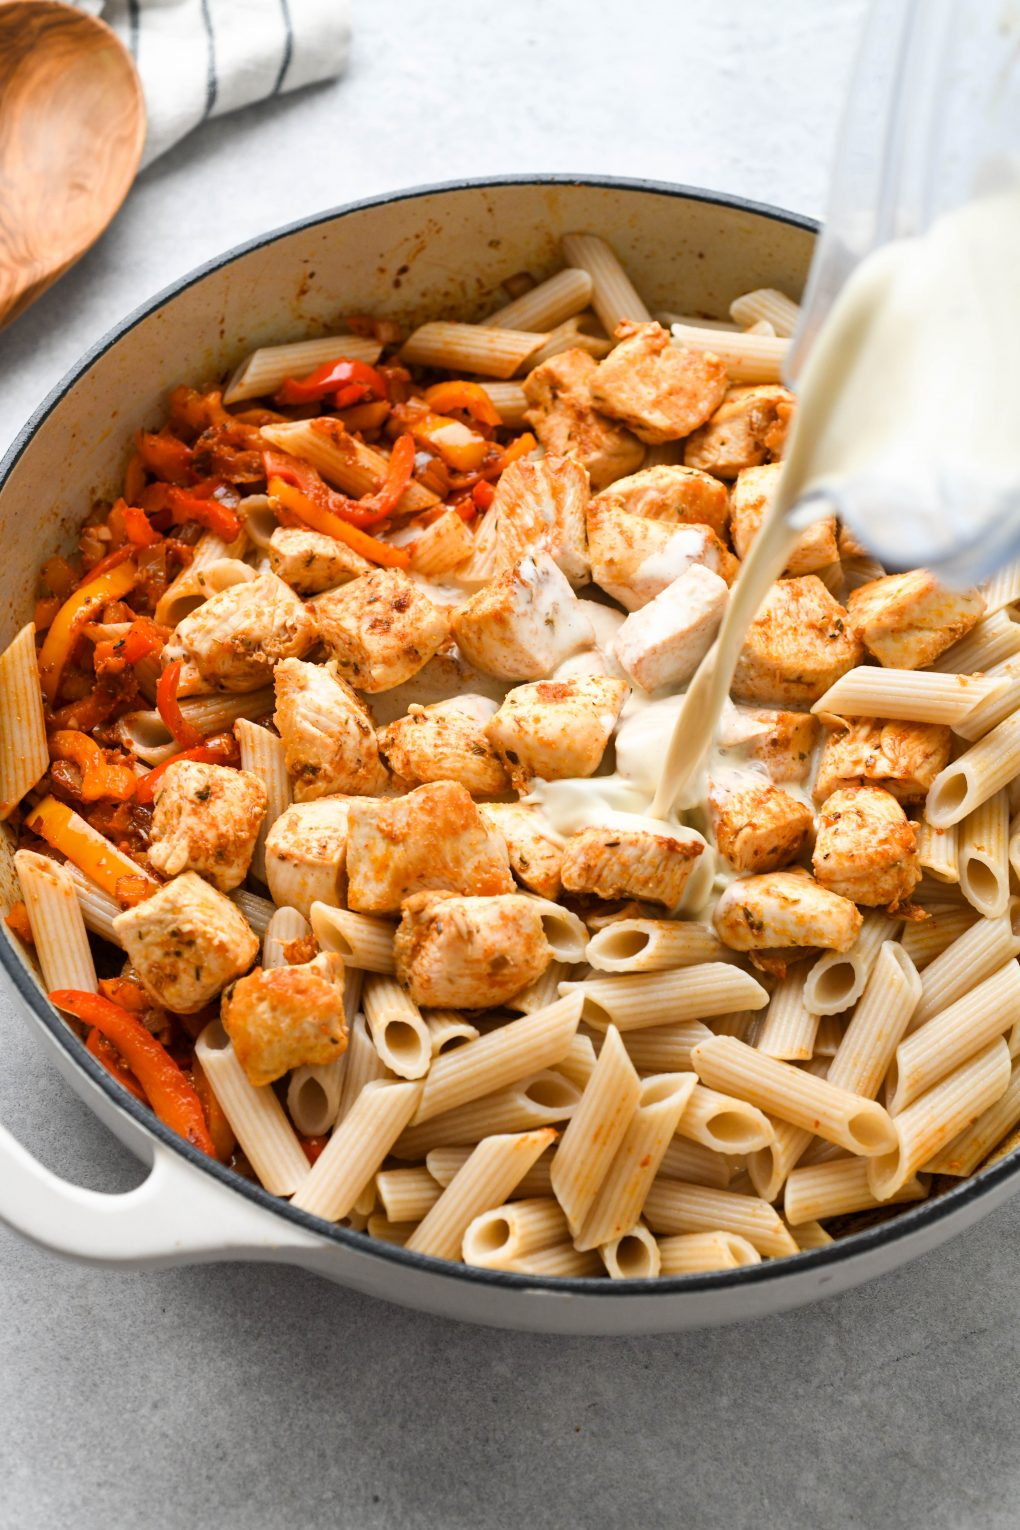 Cooked veggies, chicken, and pasta in a large white ceramic skillet with cashew cream sauce being poured in from a blender container.